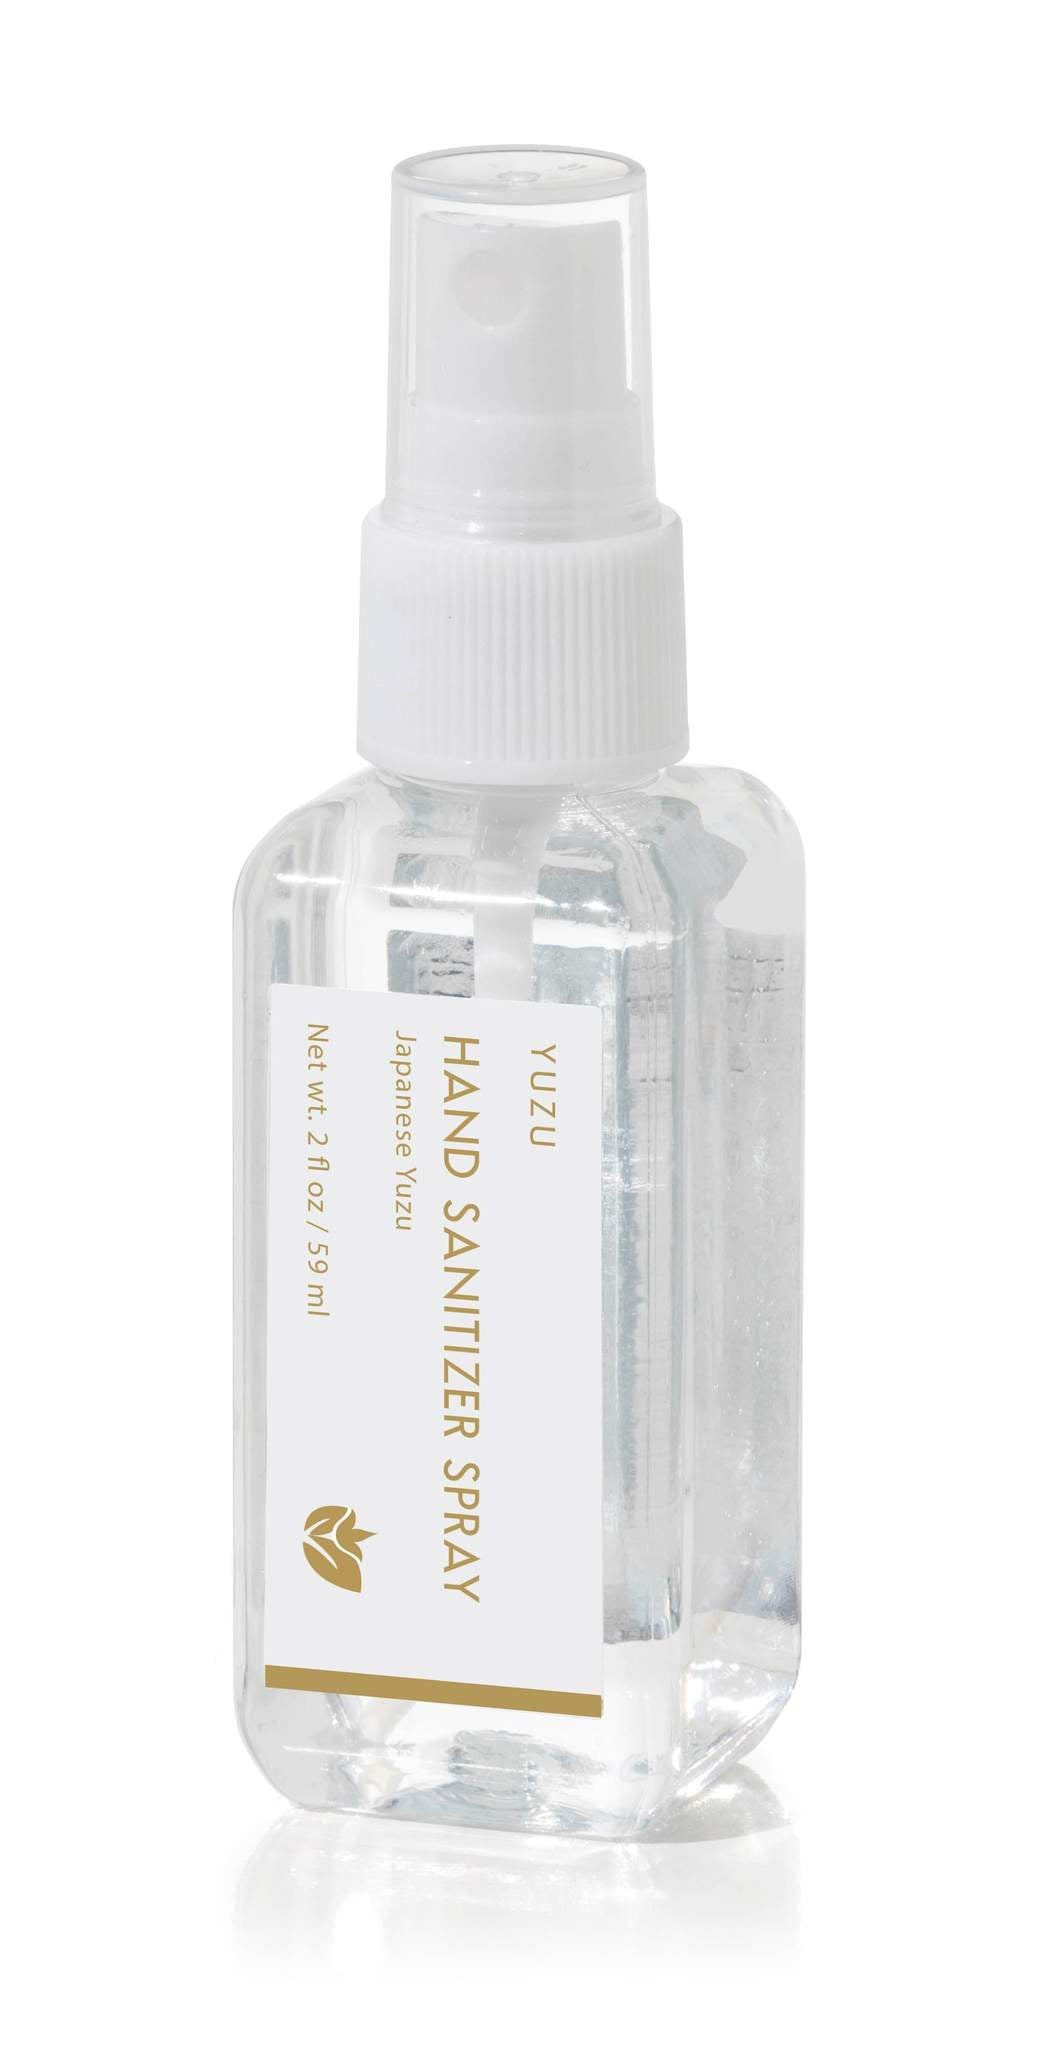 Yuzu Soap - Hand Sanitizer Spray - Japanese Yuzu